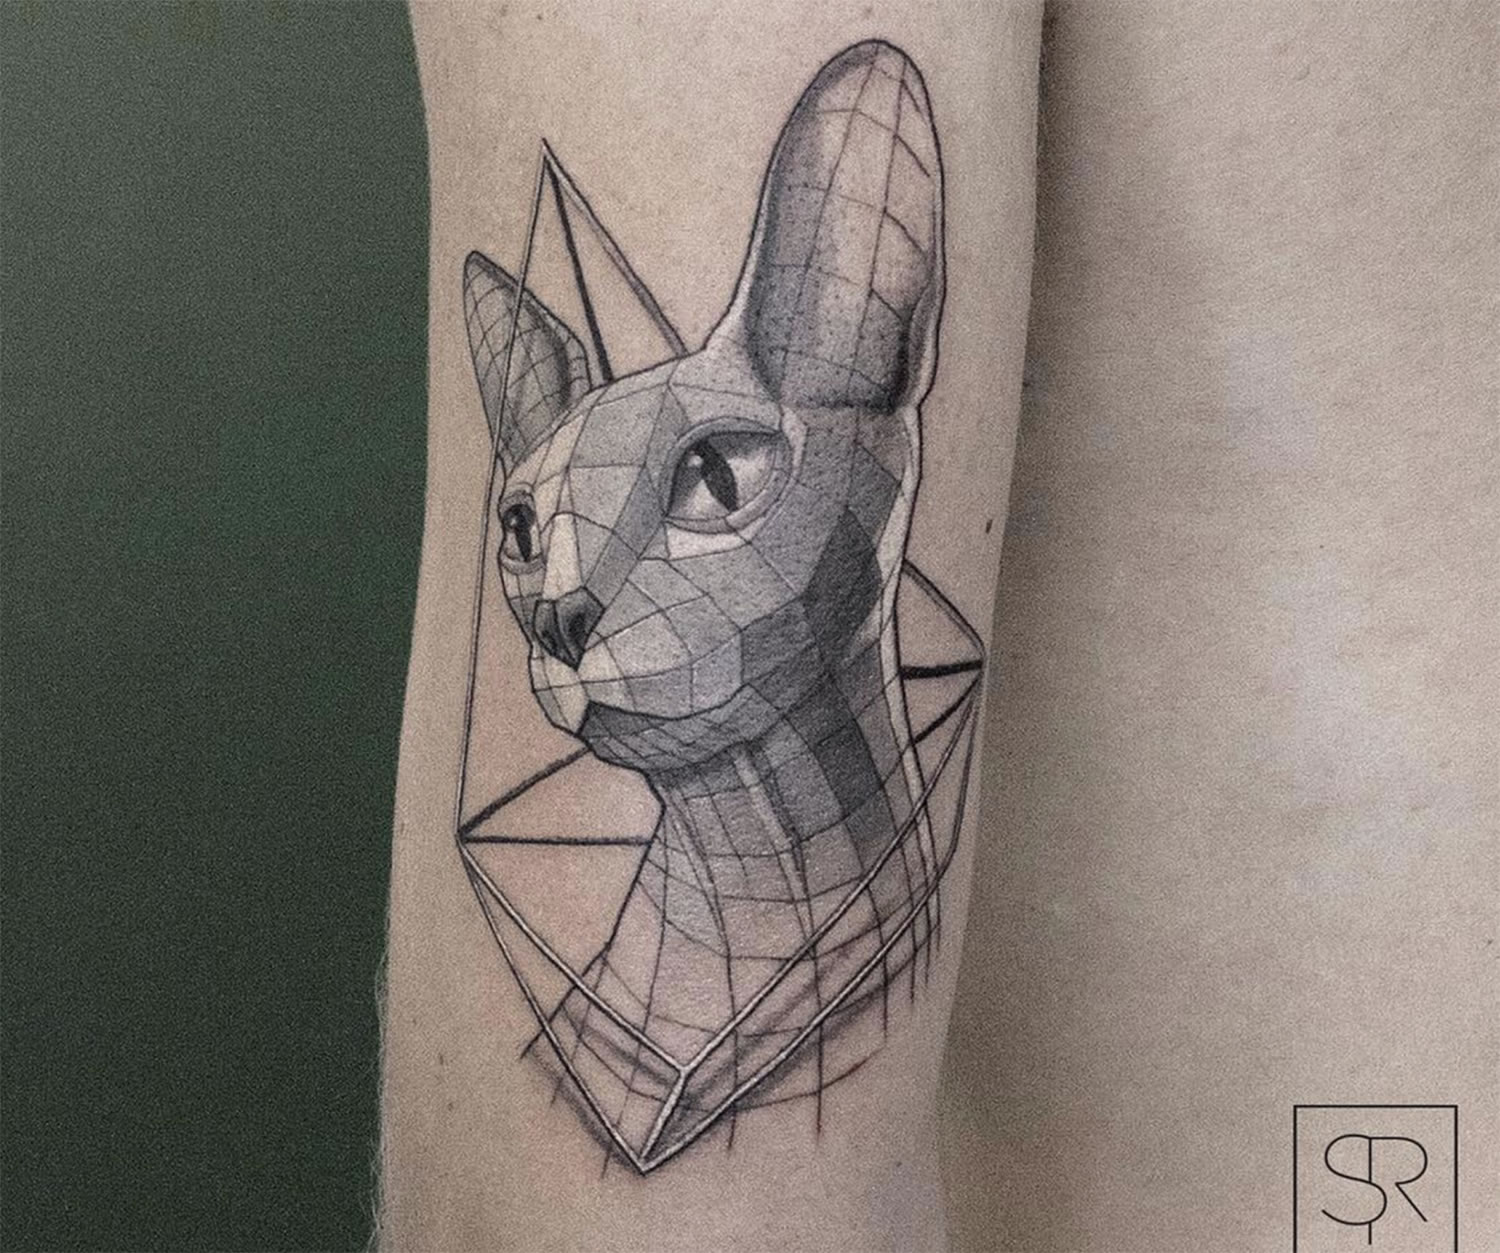 sphynx cat tattoo by Sven Rayen